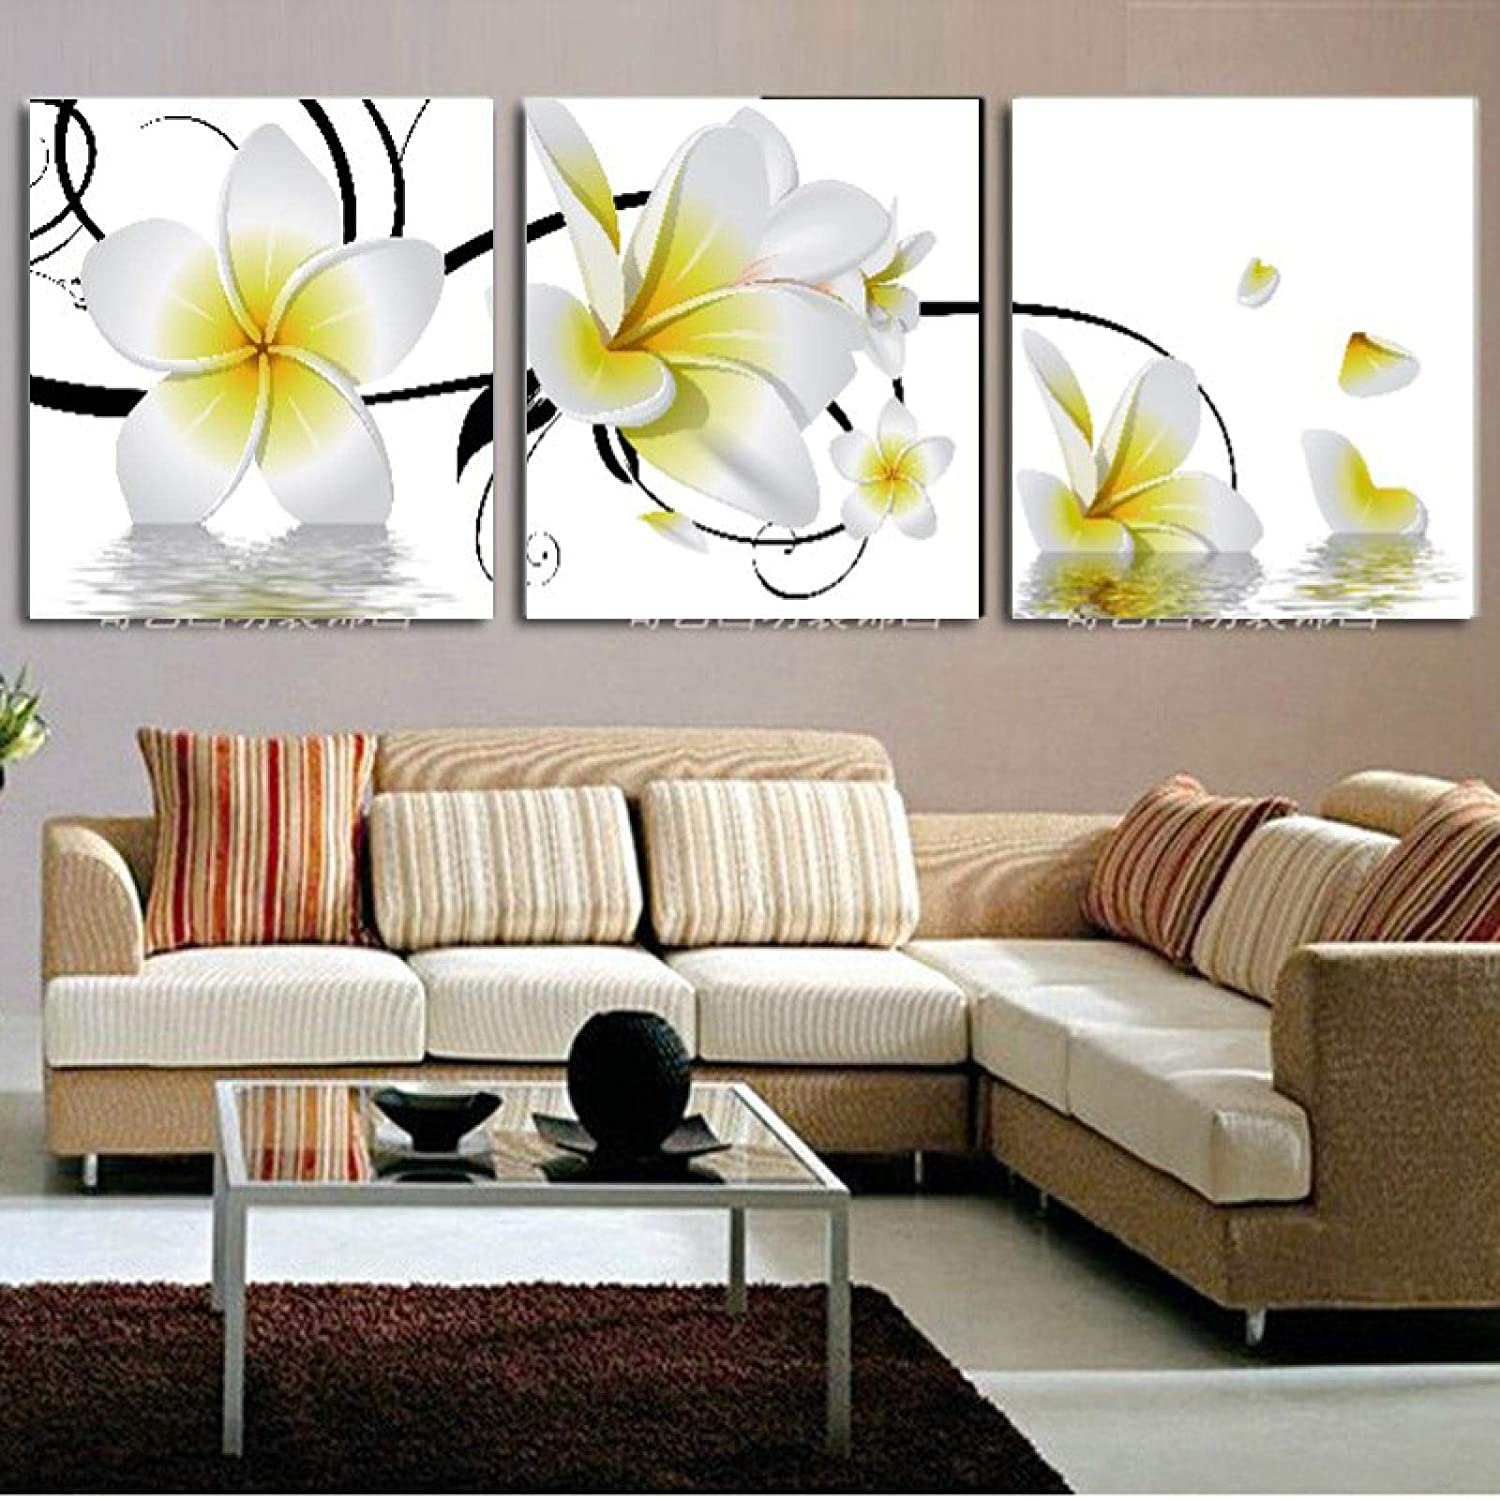 Canvas Paintings Wall Art pictures White And Yellow Plumeria Picture Print On Canvas For Home Decor Artwork Painting 40x40cmx3 Frameless